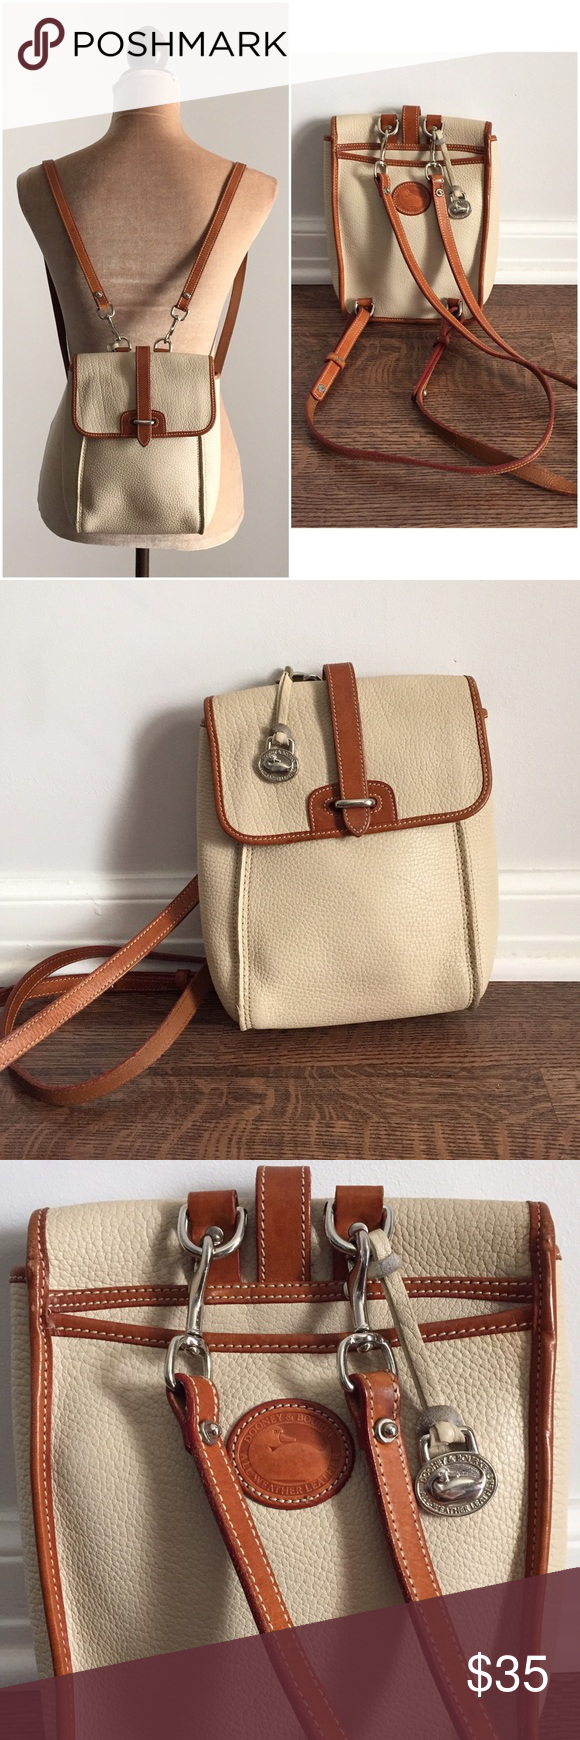 "🎭vintage🎭 Dooney & Bourke leather backpack THE coolest grungy vintage Dooney backpack!! All Weather Leather collection. In excellent condition! beautiful sturdy clean cream leather. inside is very clean and it's in excellent shape for its age. perfect for all the essentials! measures 9"" length x 7"" width. straps measure 34"" all around. Dooney & Bourke Bags Backpacks"